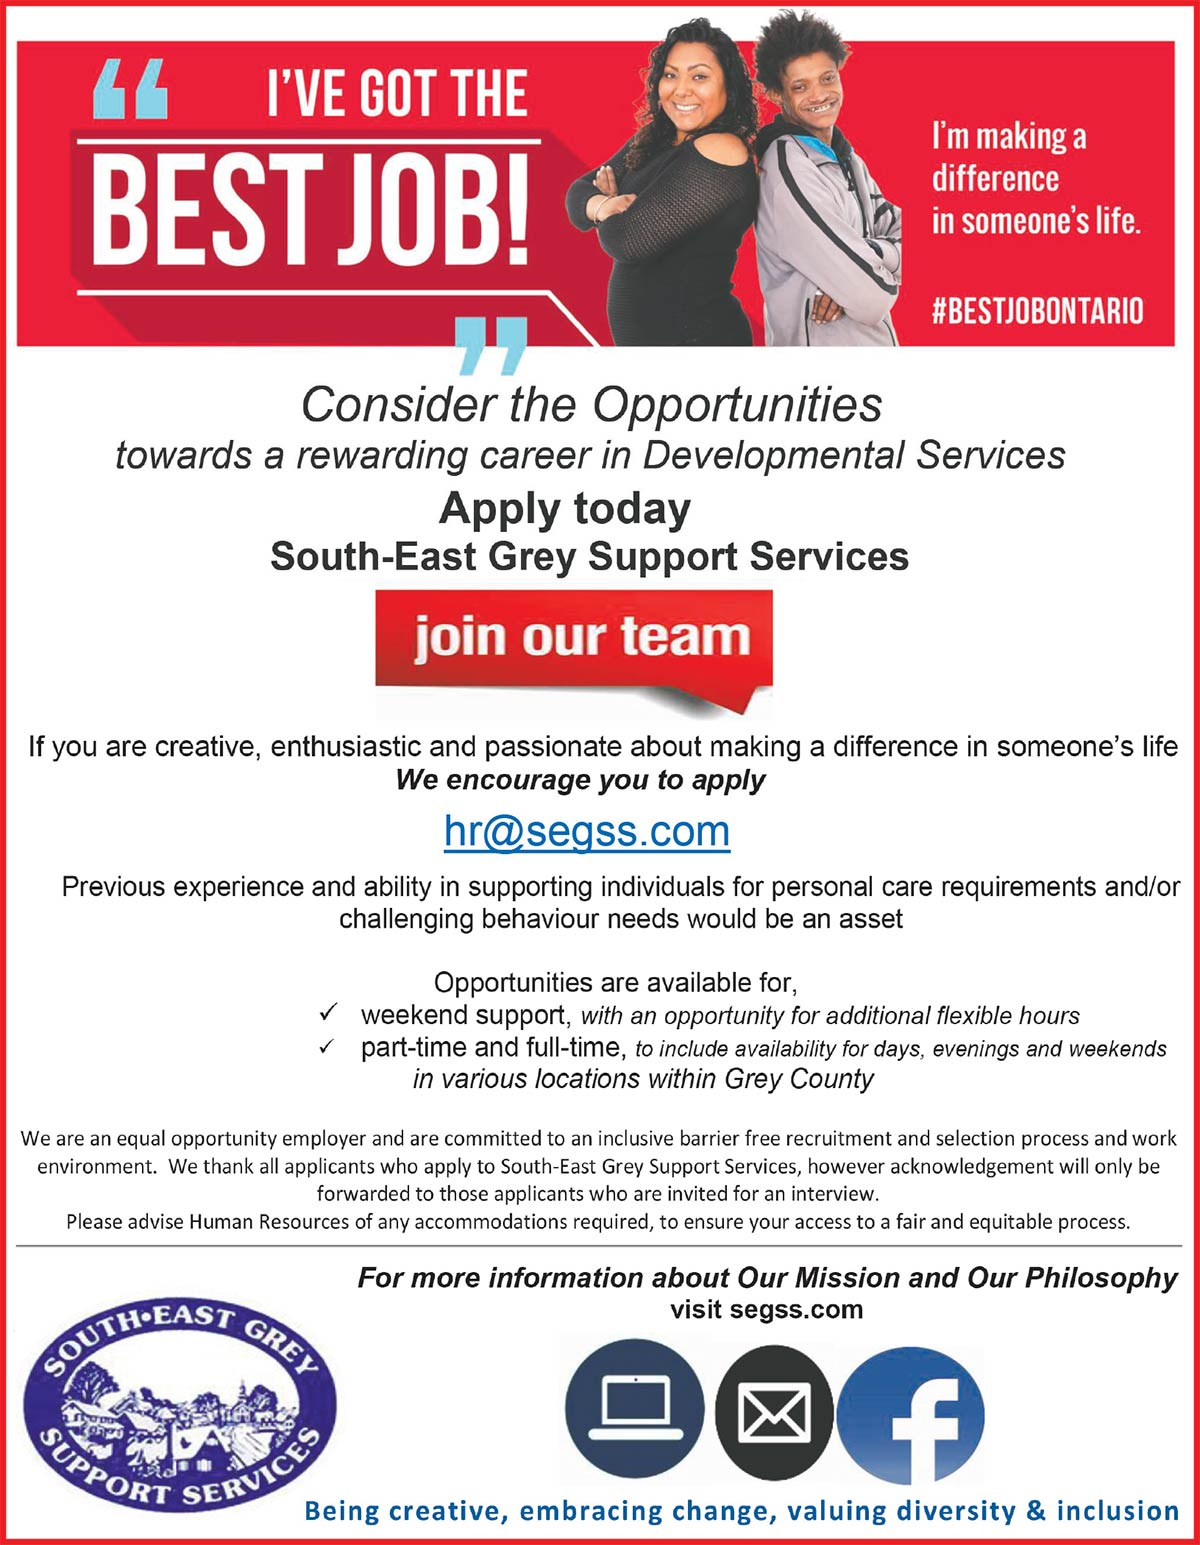 Consider the Opportunities - Apply Today at South-East Grey Support Services - Email us hr@segss.com